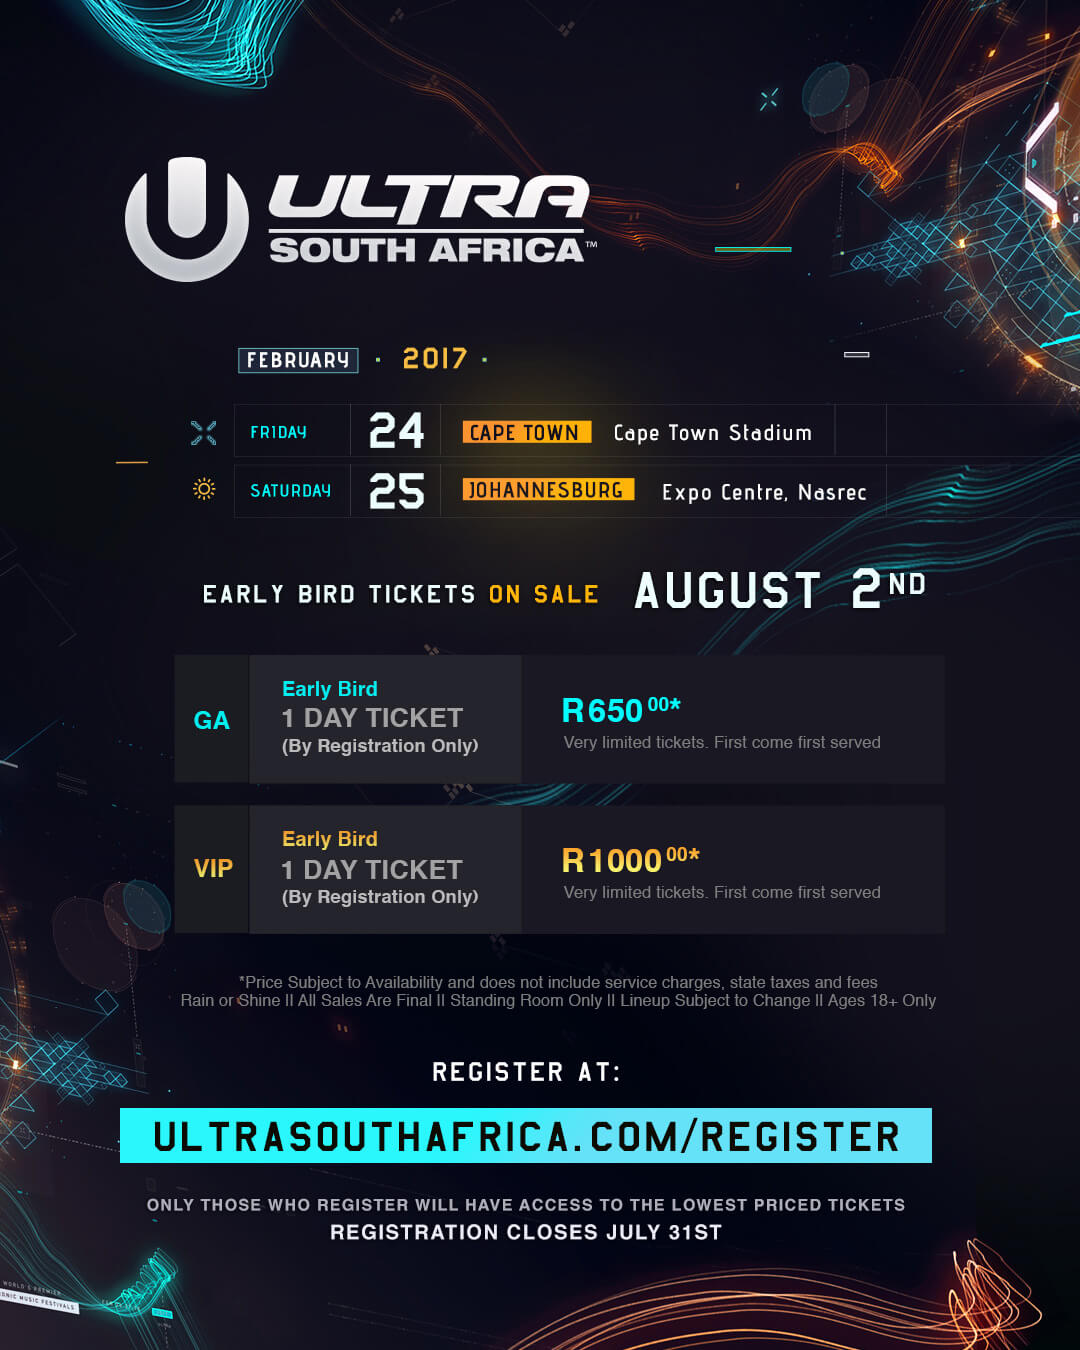 ULTRA South Africa Announces New Venue, Early Birds on Sale August 2nd